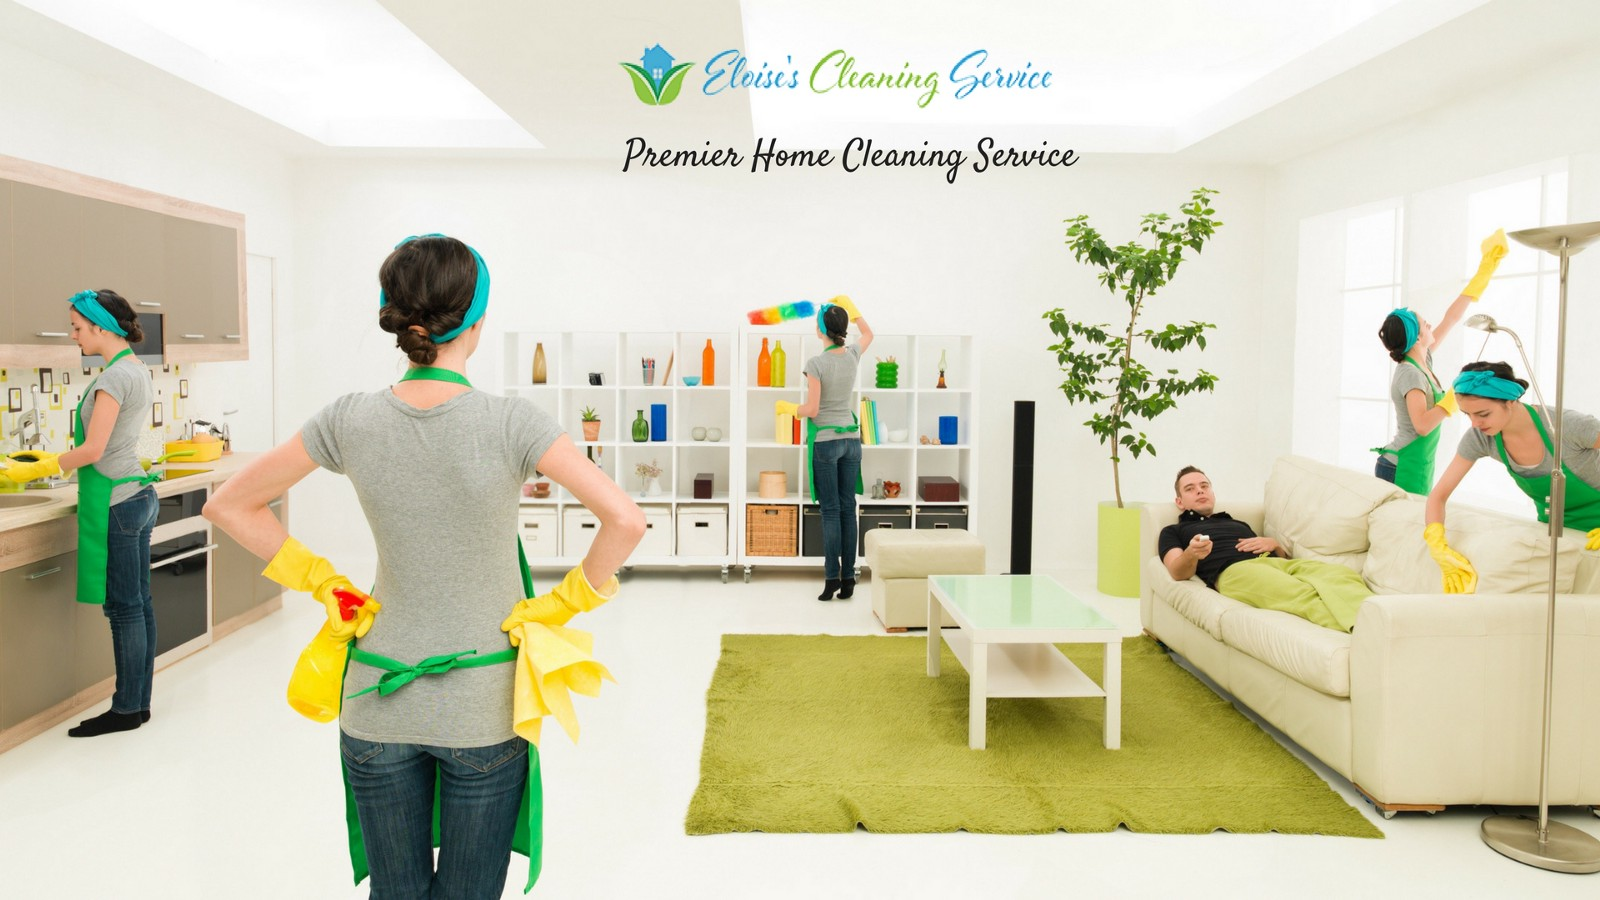 httpswwweloisecleanscom we are a full service residential and vacation rental cleaning company our cleaners are professionally trained to deliver